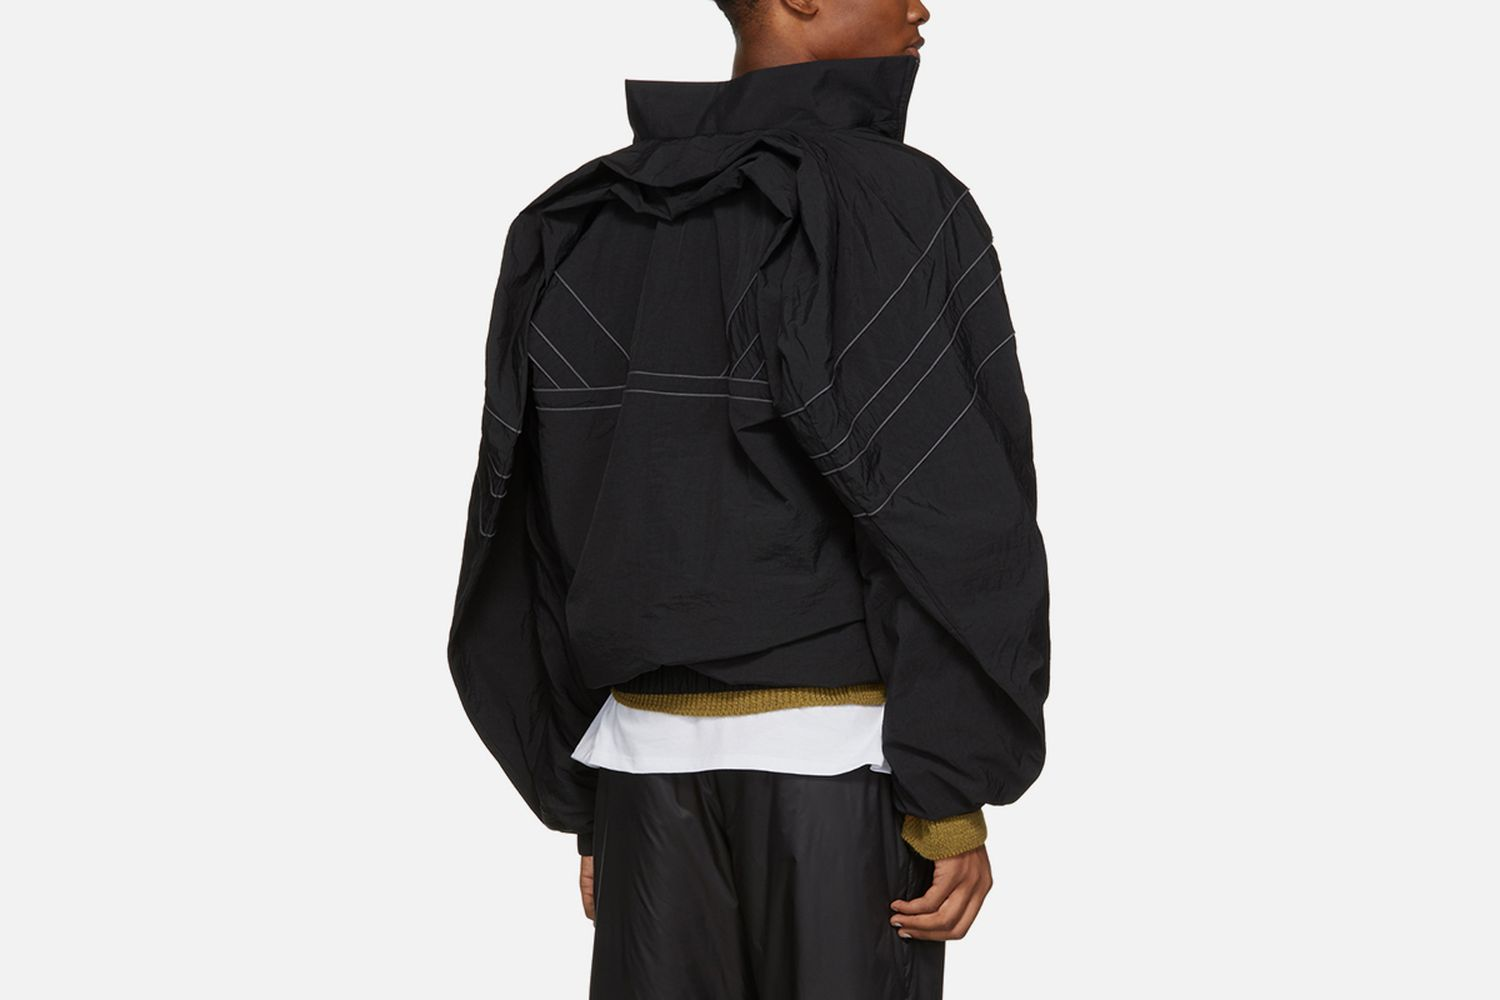 Clipped Shoulders Jacket